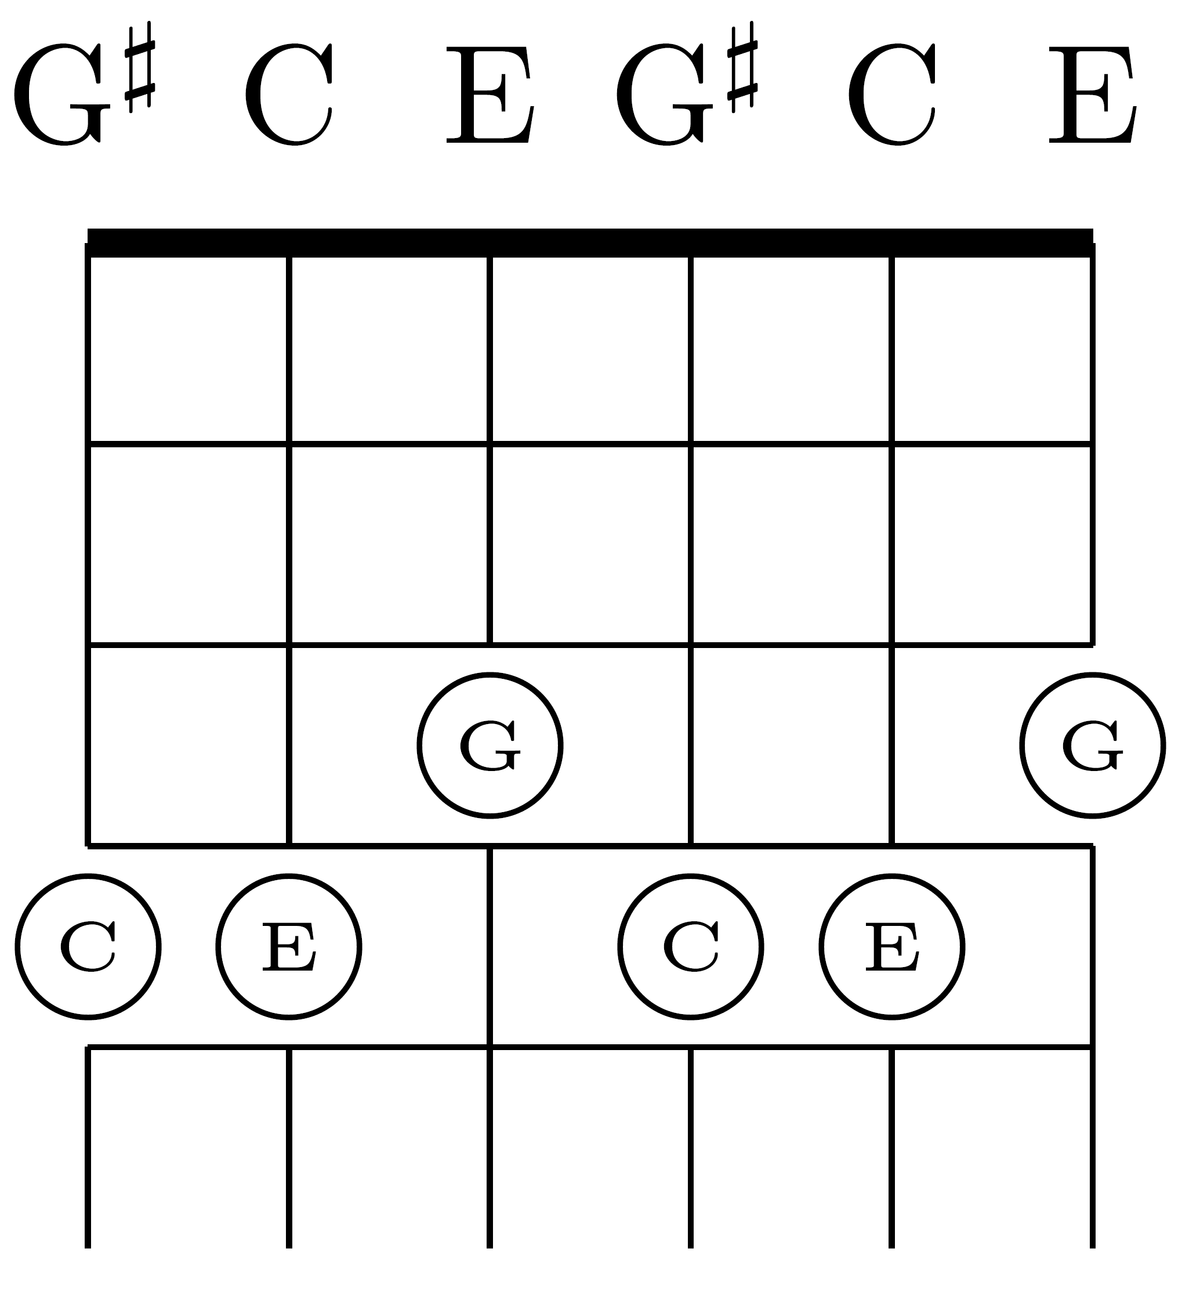 Repetitive tuning wikipedia hexwebz Choice Image